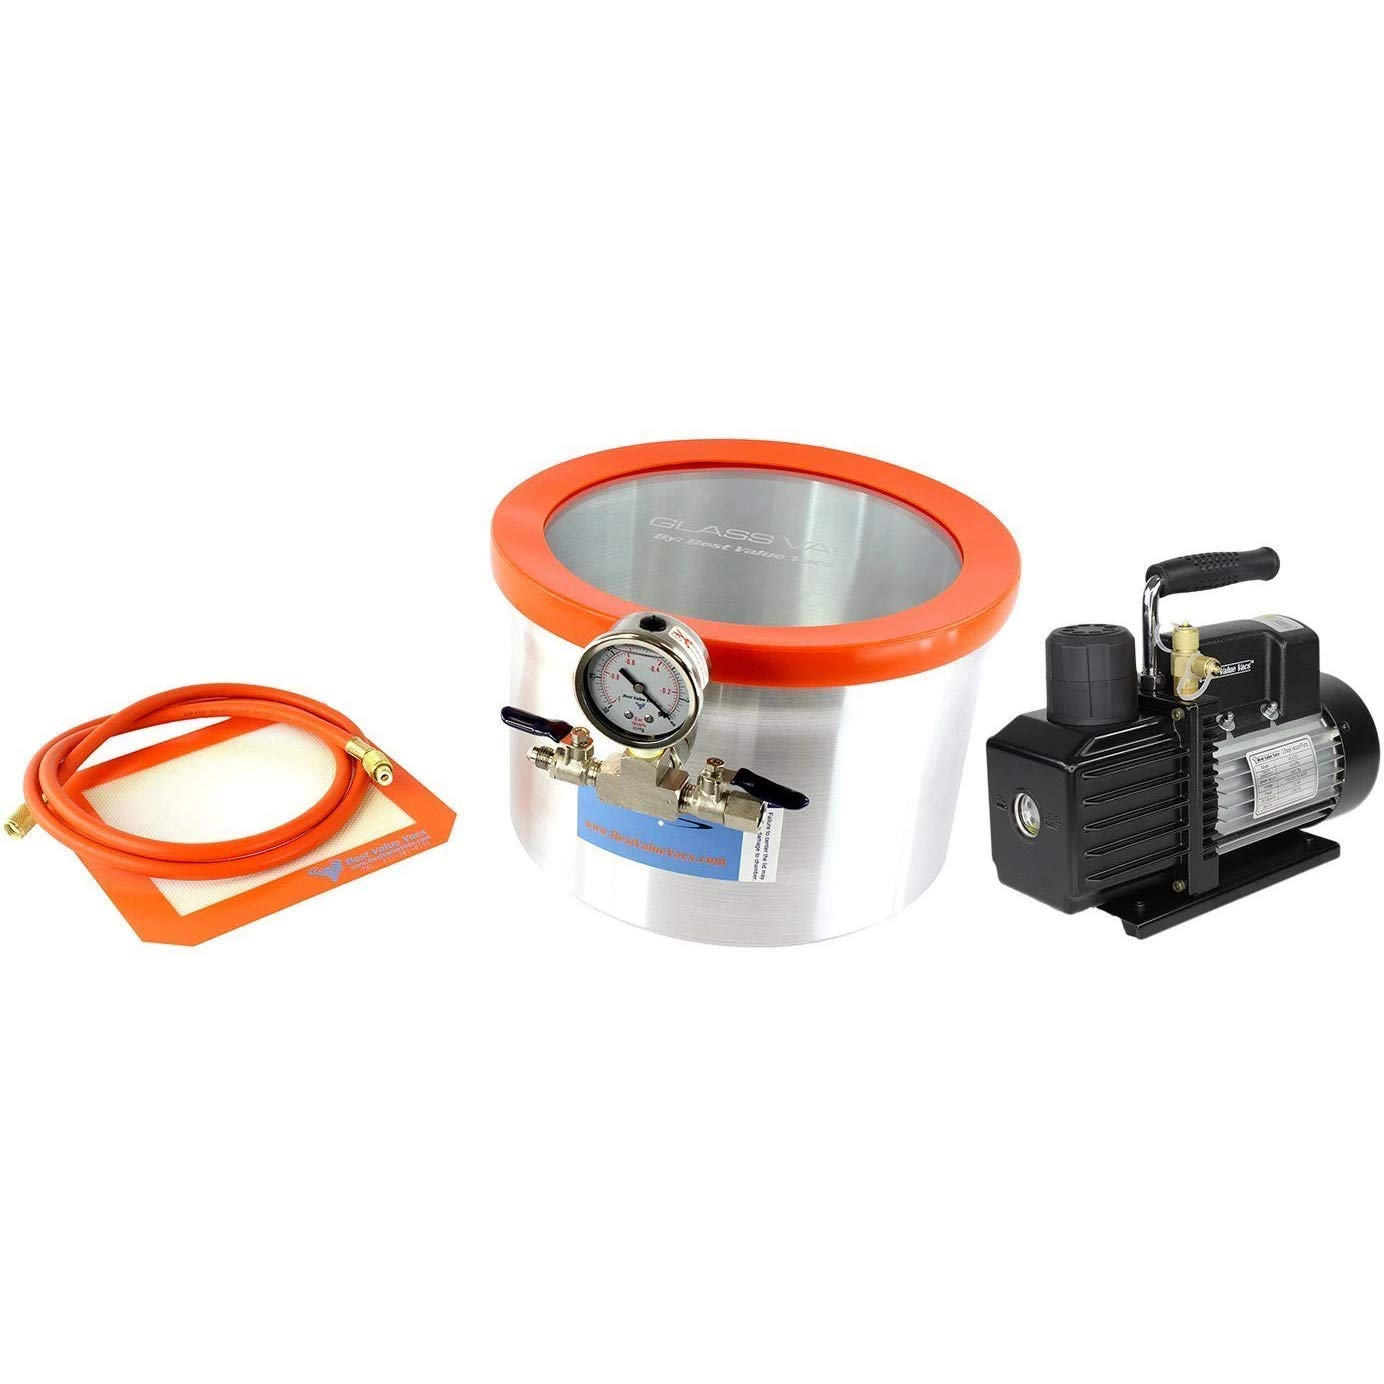 Glass Vac 2 Gallon Aluminum Vacuum Chamber and VE225 4CFM Two Stage Vacuum Pump Kit by BEST VALUE VACS